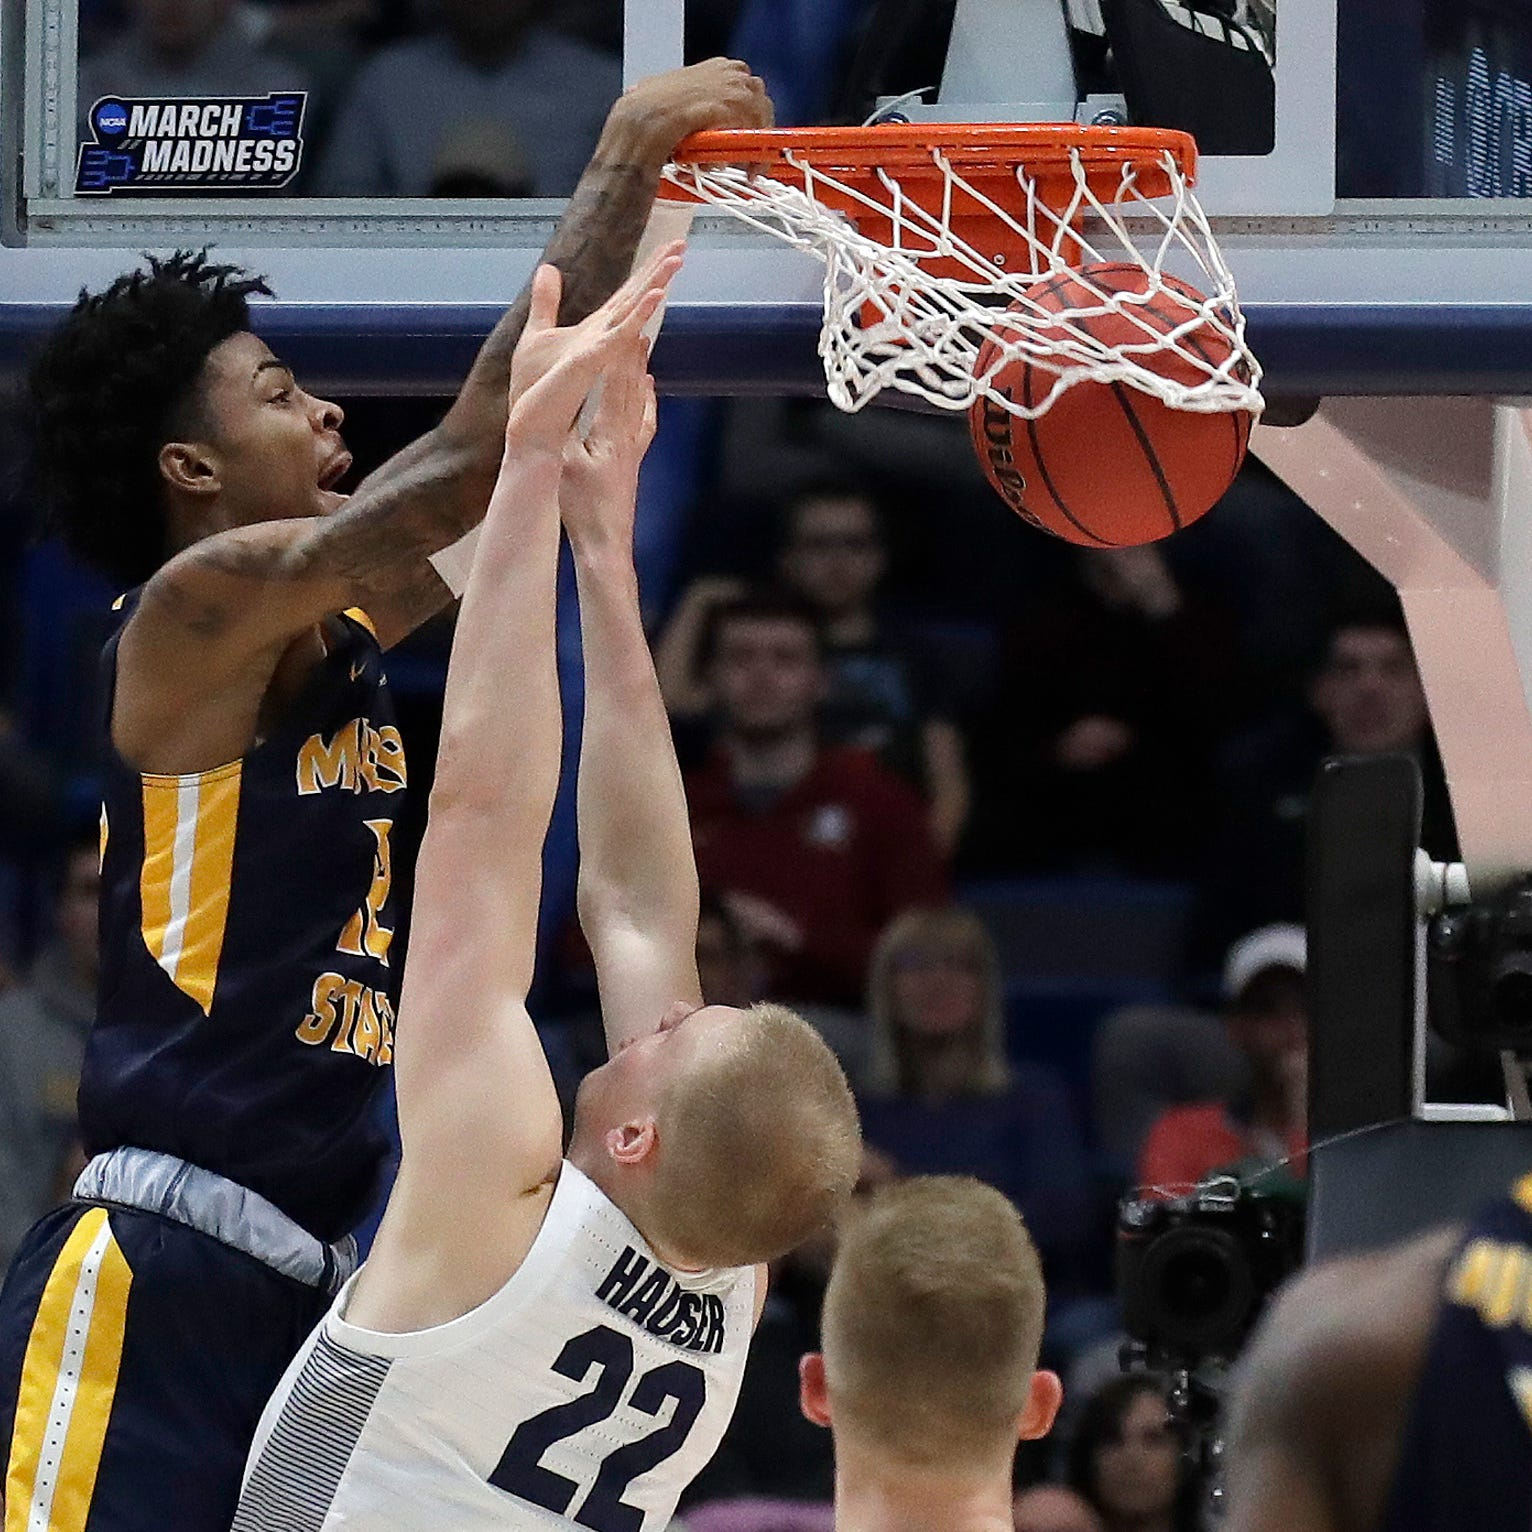 NBA draft evaluation: Murray State point guard Ja Morant's game broken down by a scout